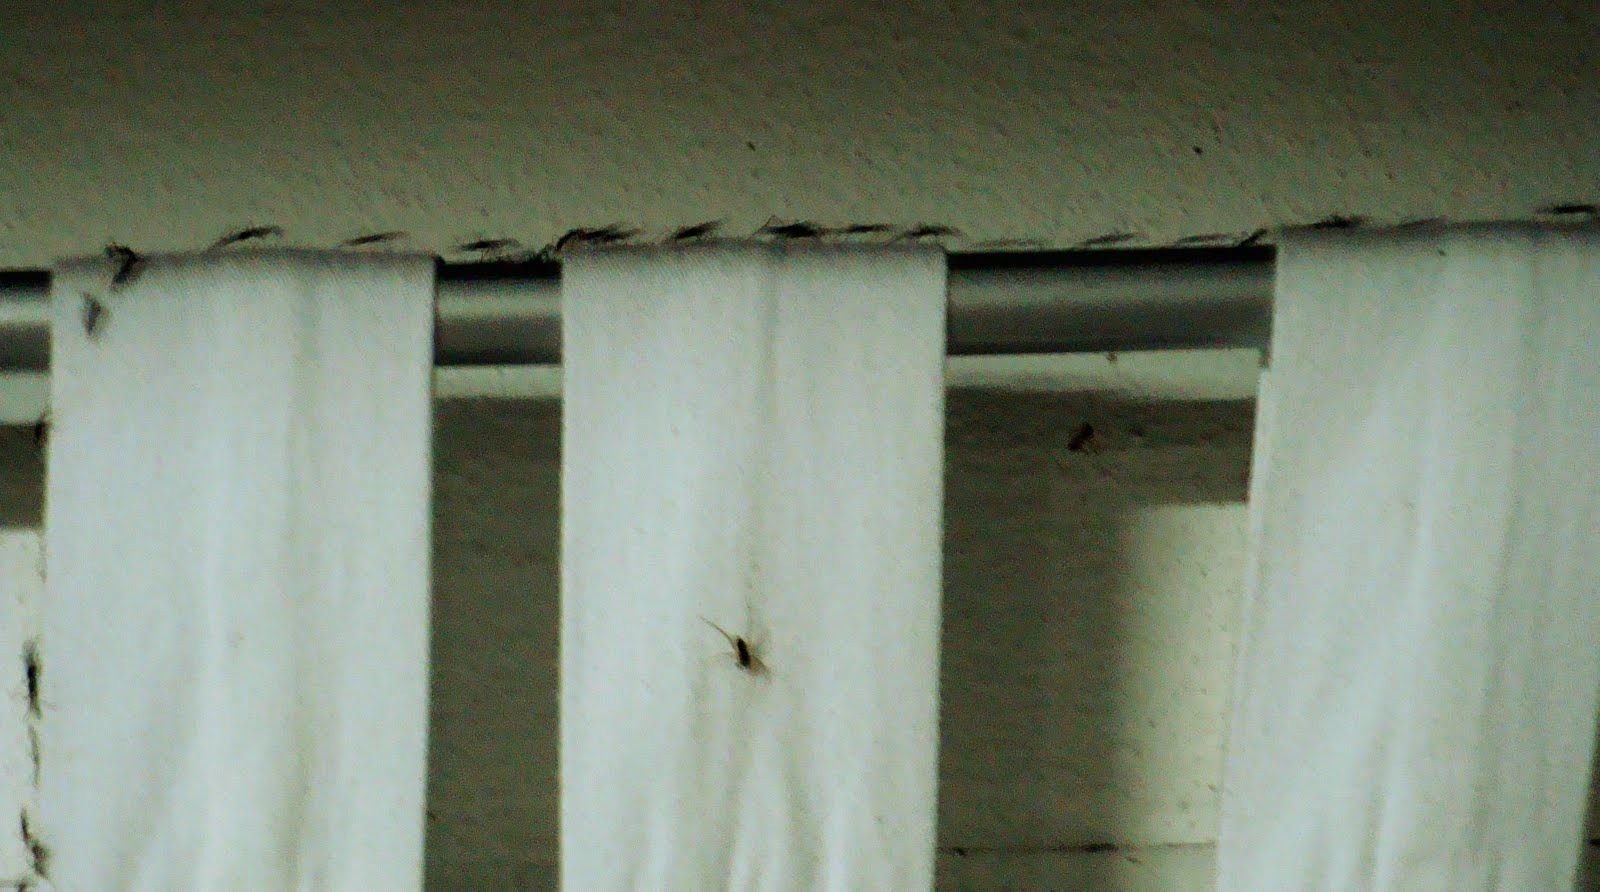 Tiny Black Ants Kitchen Small Ants In Kitchen Tiny Black Bugs With Wings That Gather